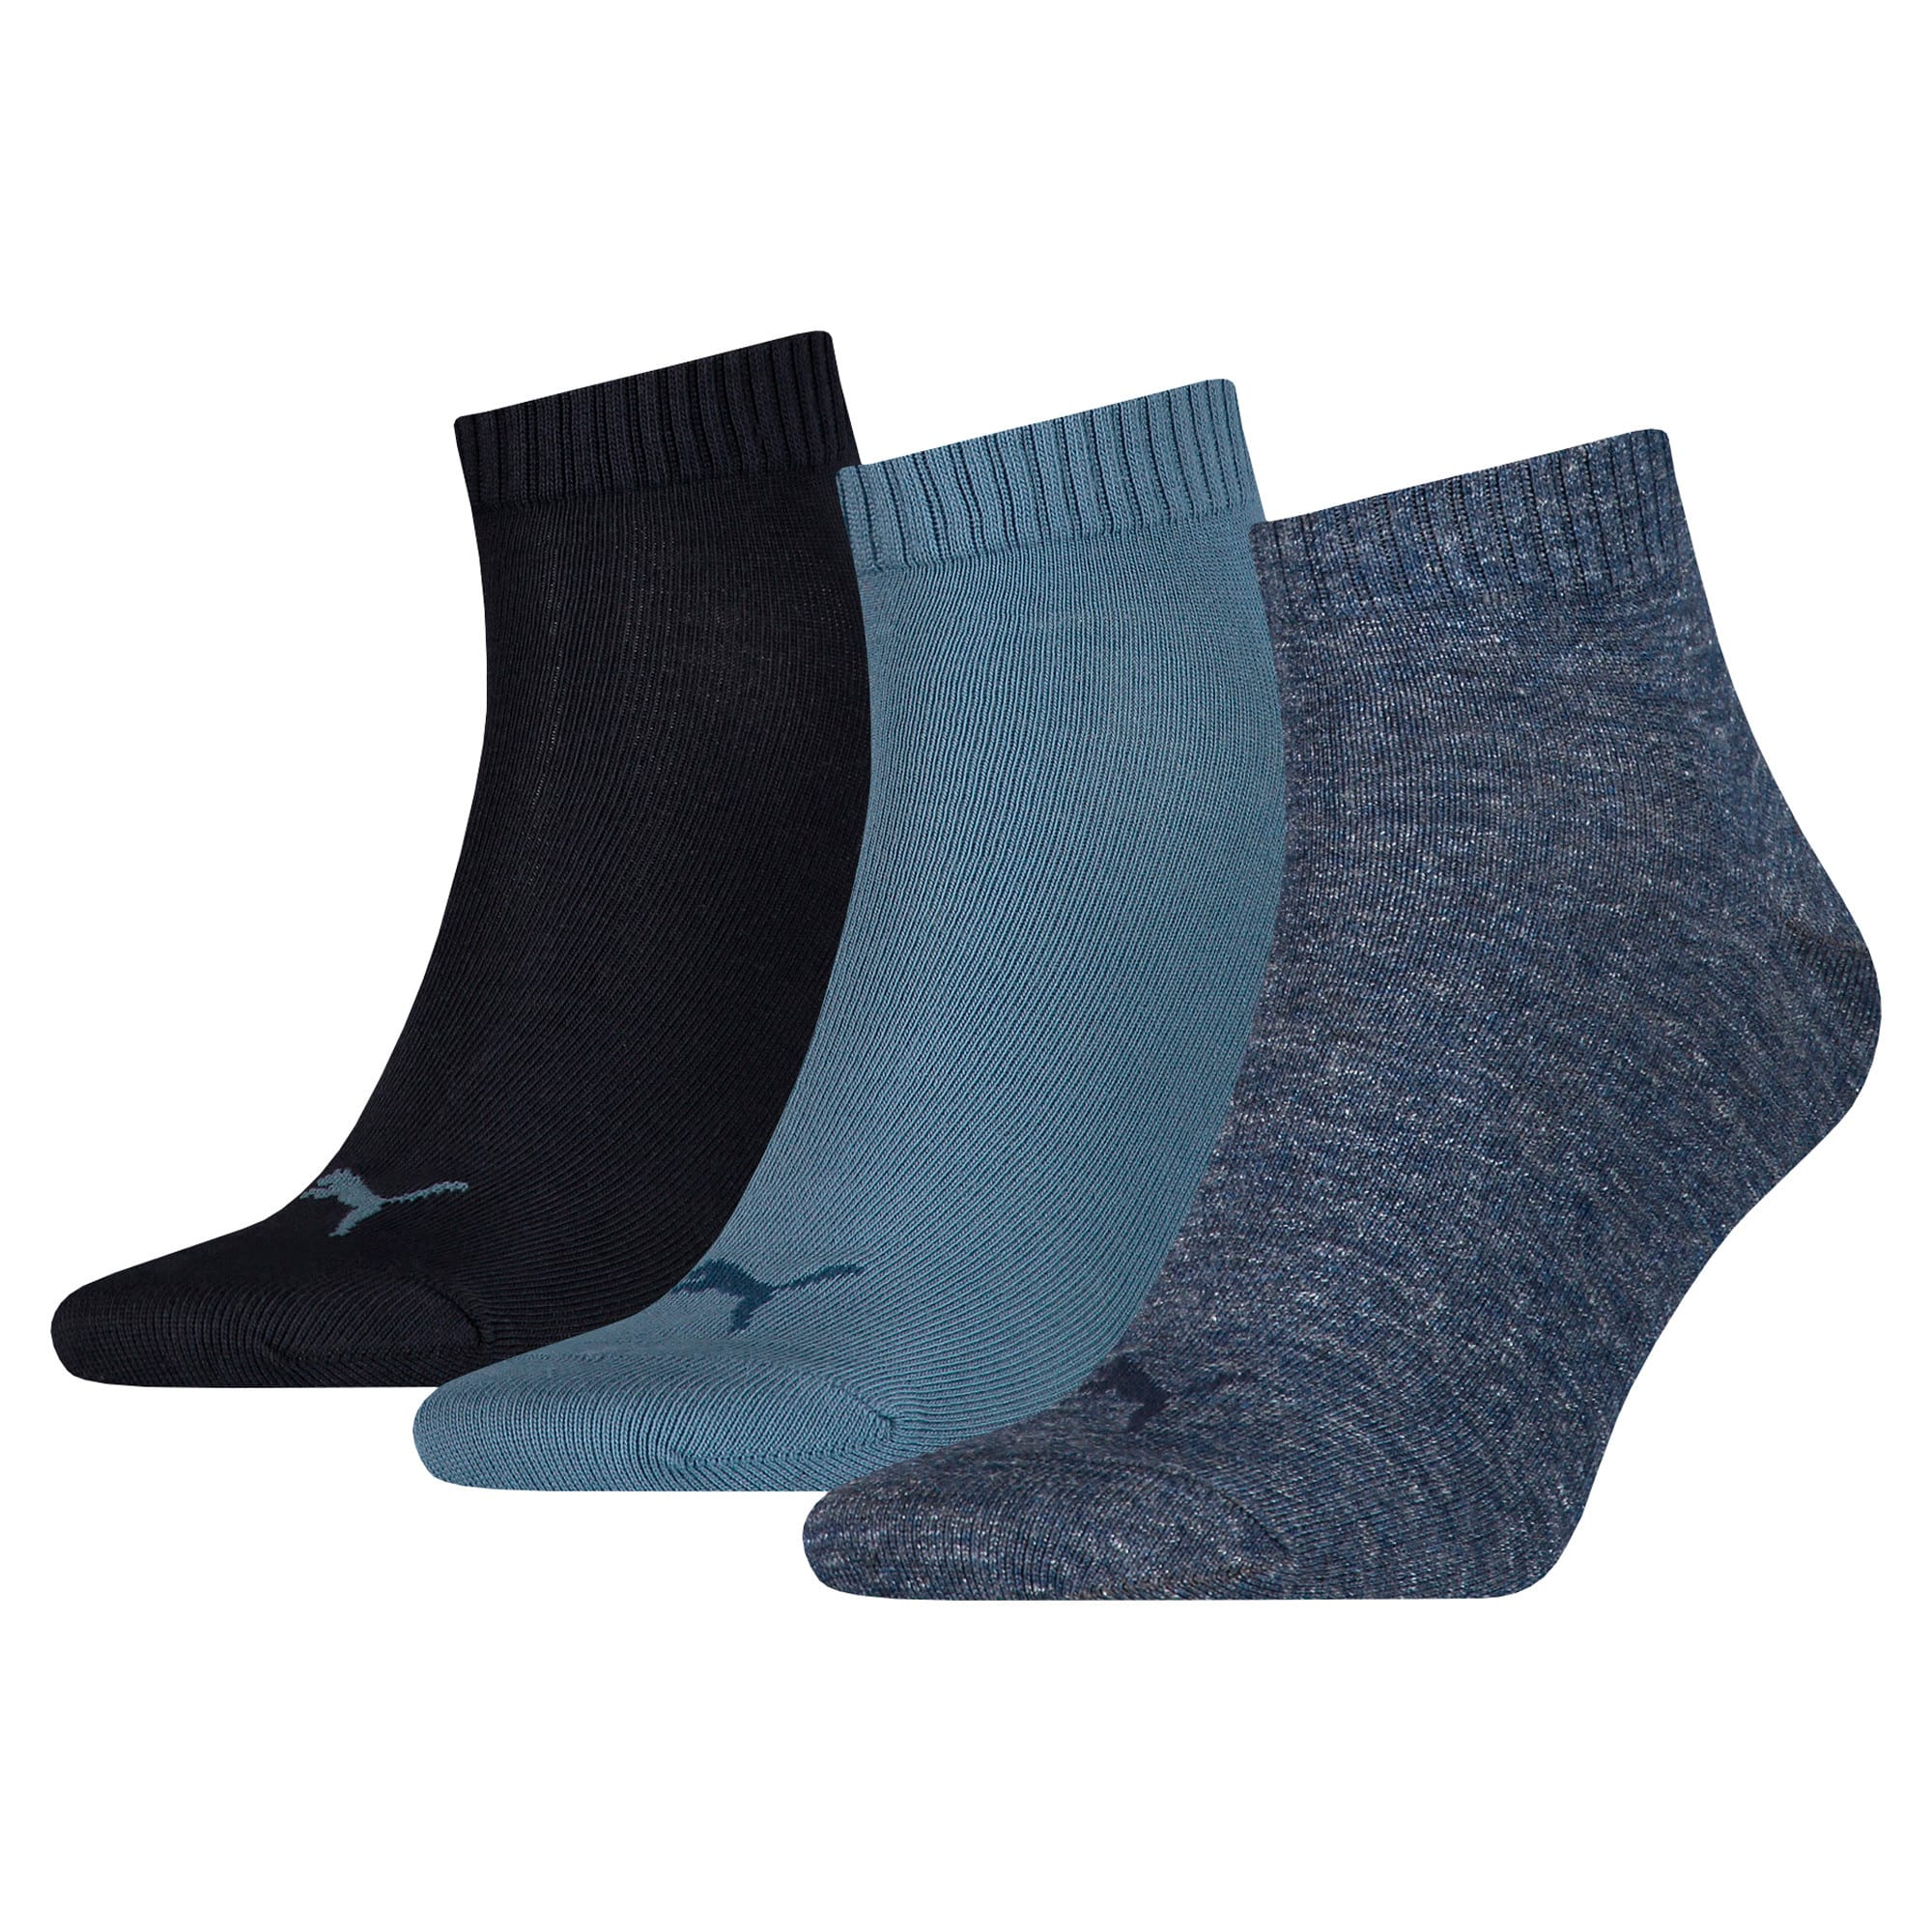 Thumbnail 1 of Plain Quarter Socks 3 Pack, denim blue, medium